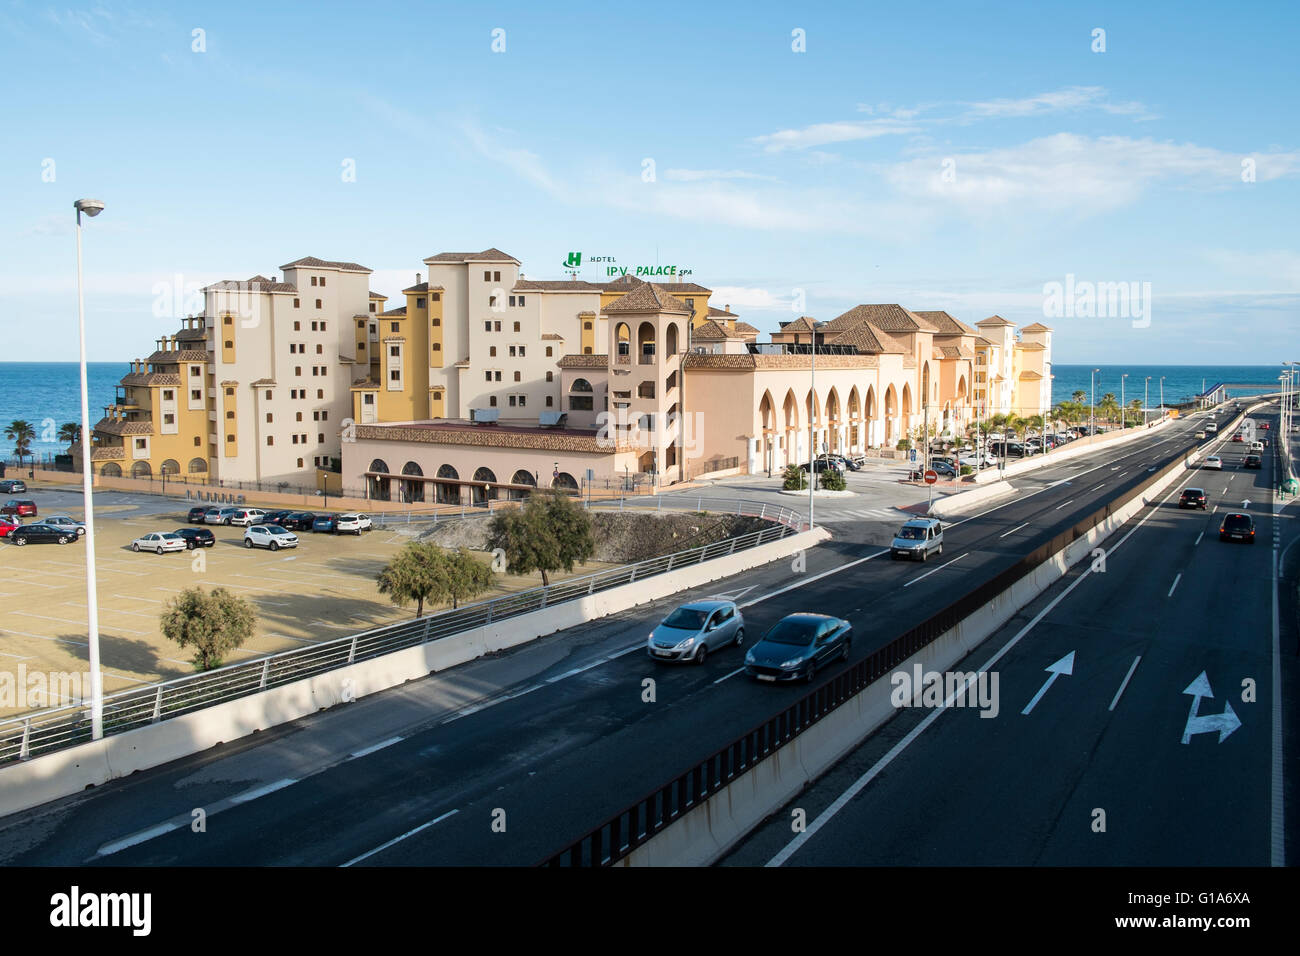 Spa en malaga stunning featured image with spa en malaga - Spas en malaga ...